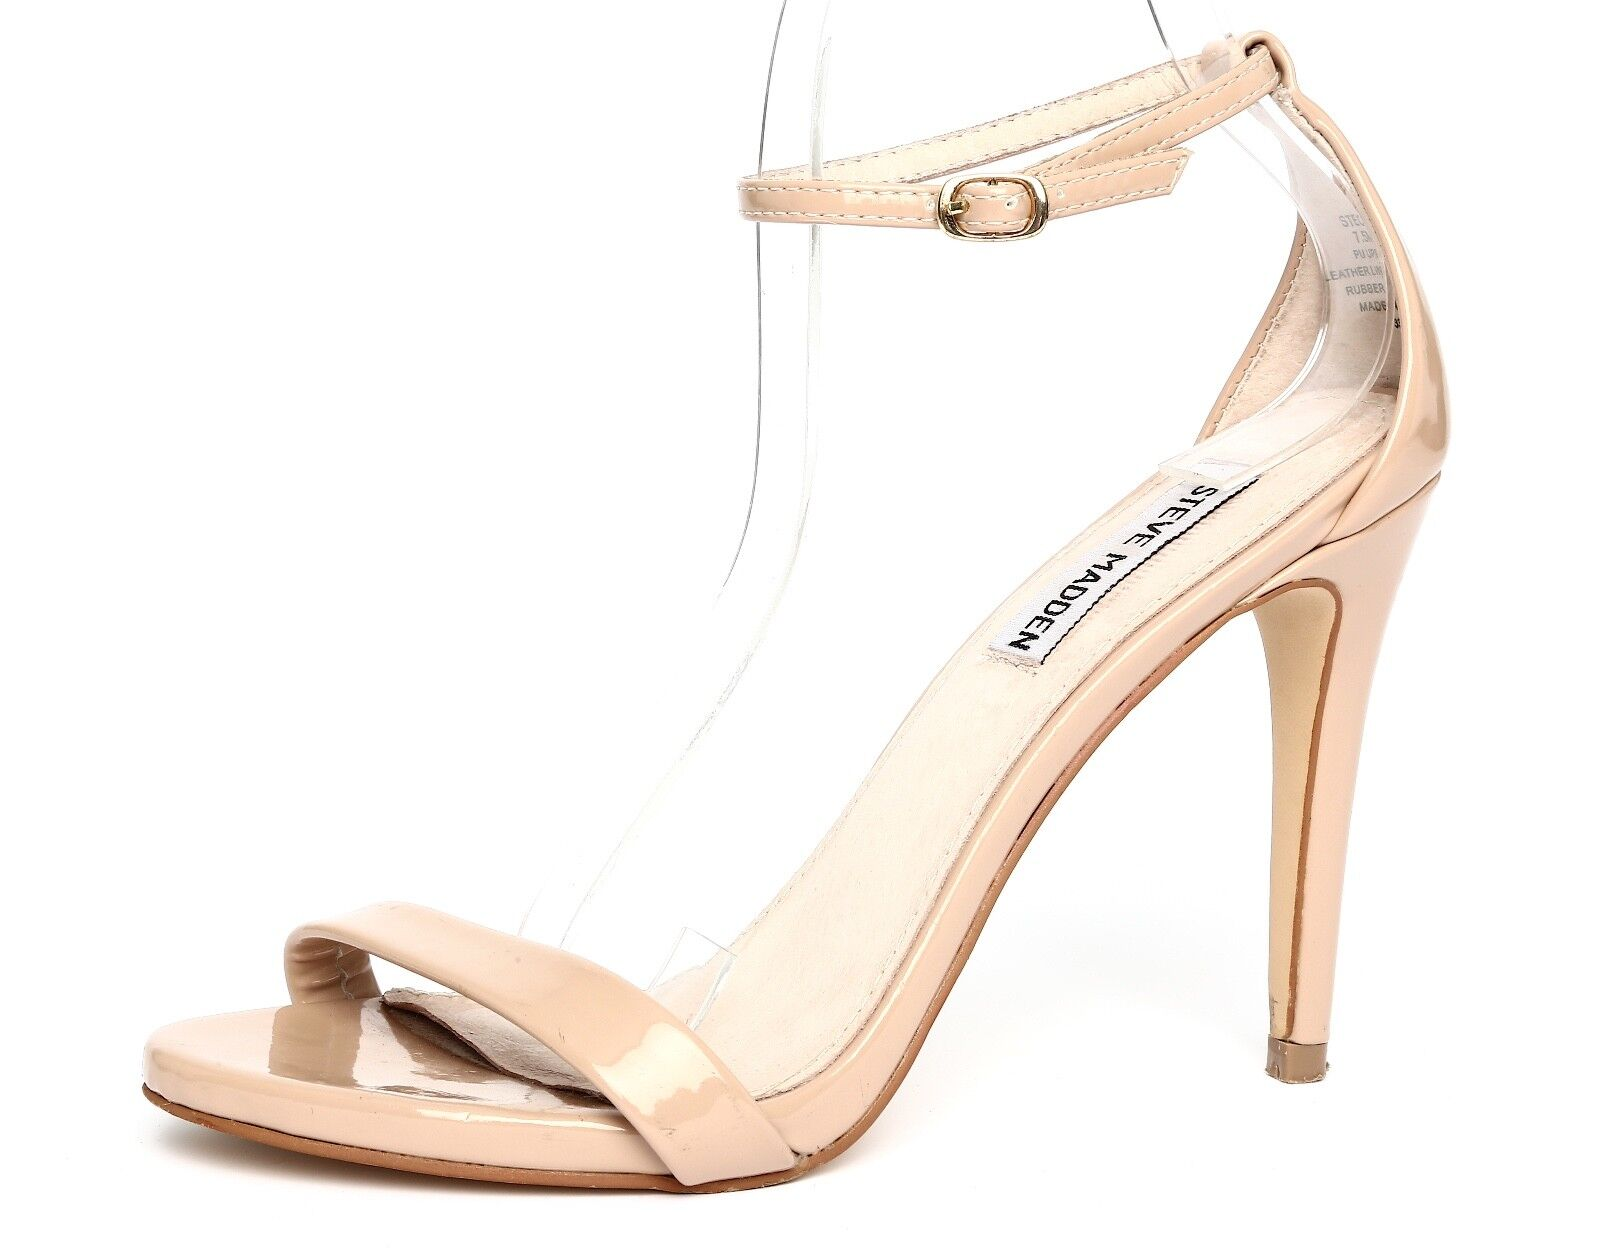 Steve Madden Stecy Patent Leather Nude Ankle Strap Sandal Heels Sz 7.5M 3309